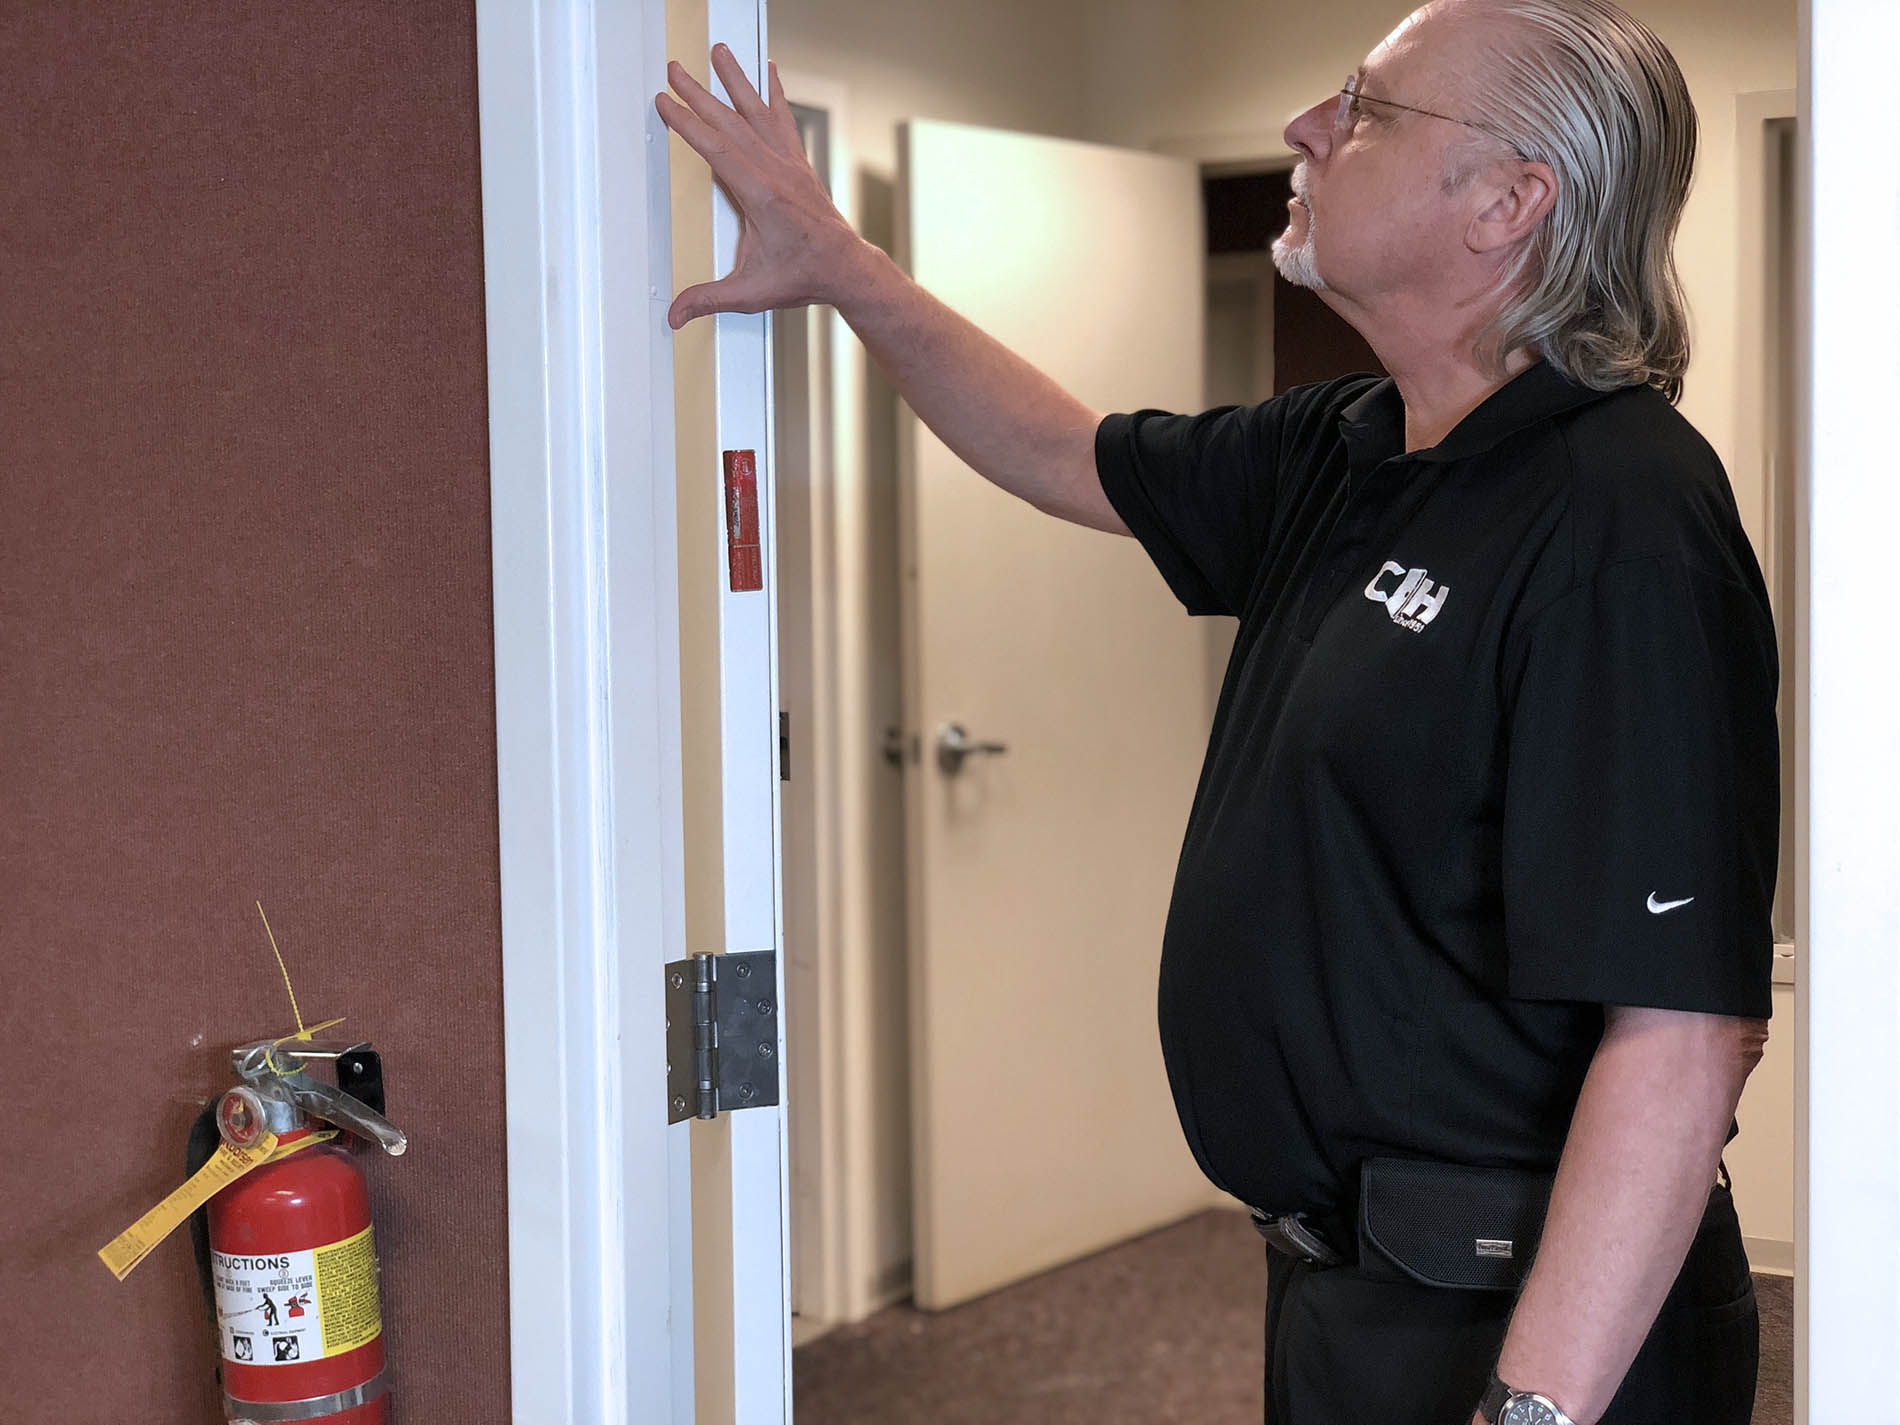 Fire doors, Fire codes & Inspections   we got you covered